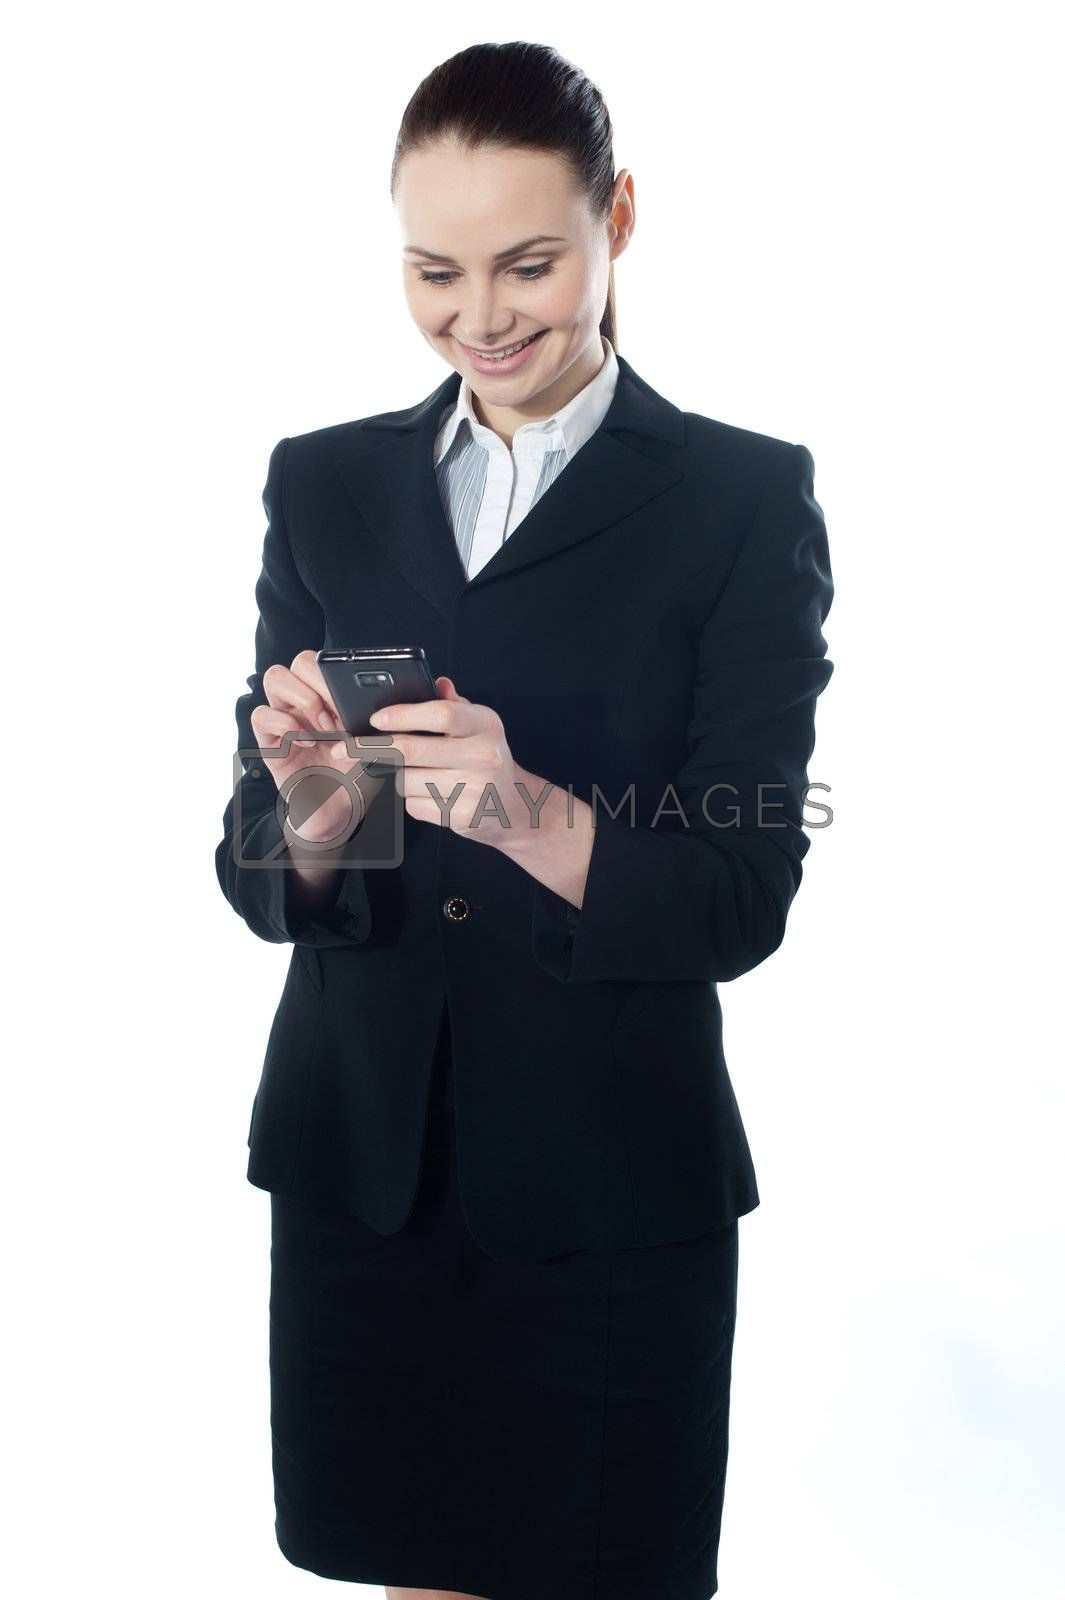 Confident businessperson messaging and smiling